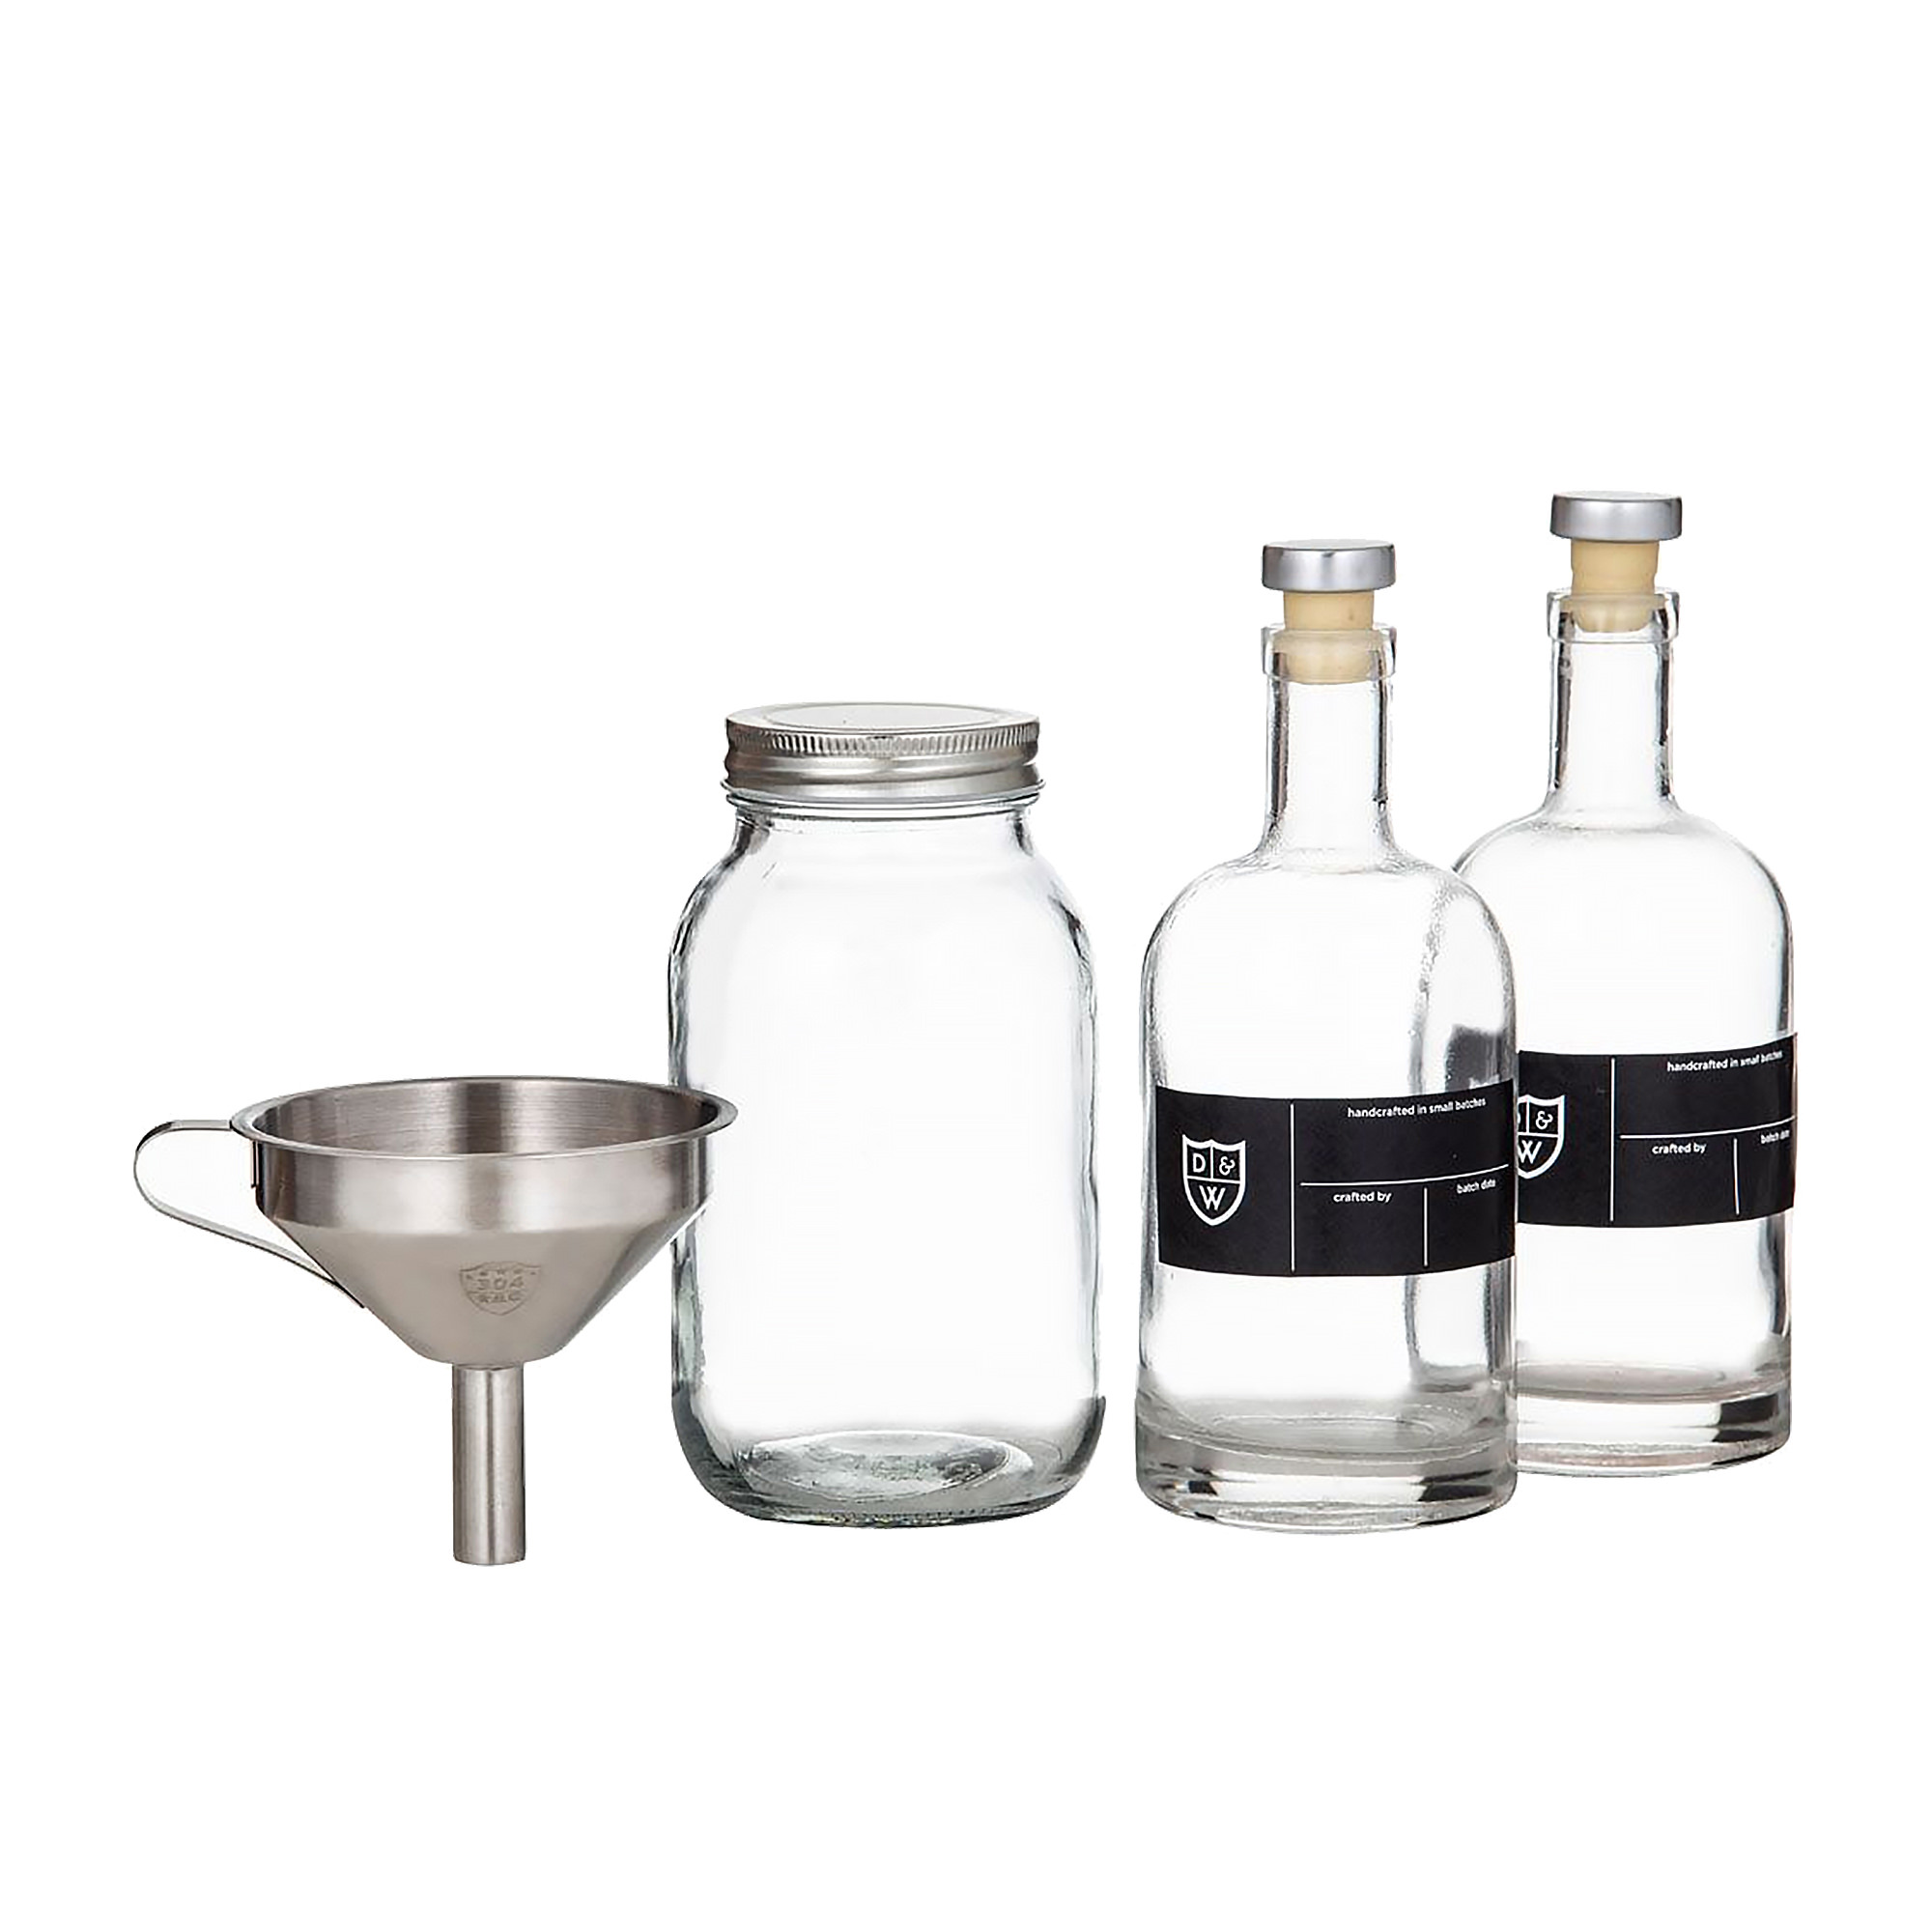 Davis & Waddell Homemade Co Gin Infusing Kit